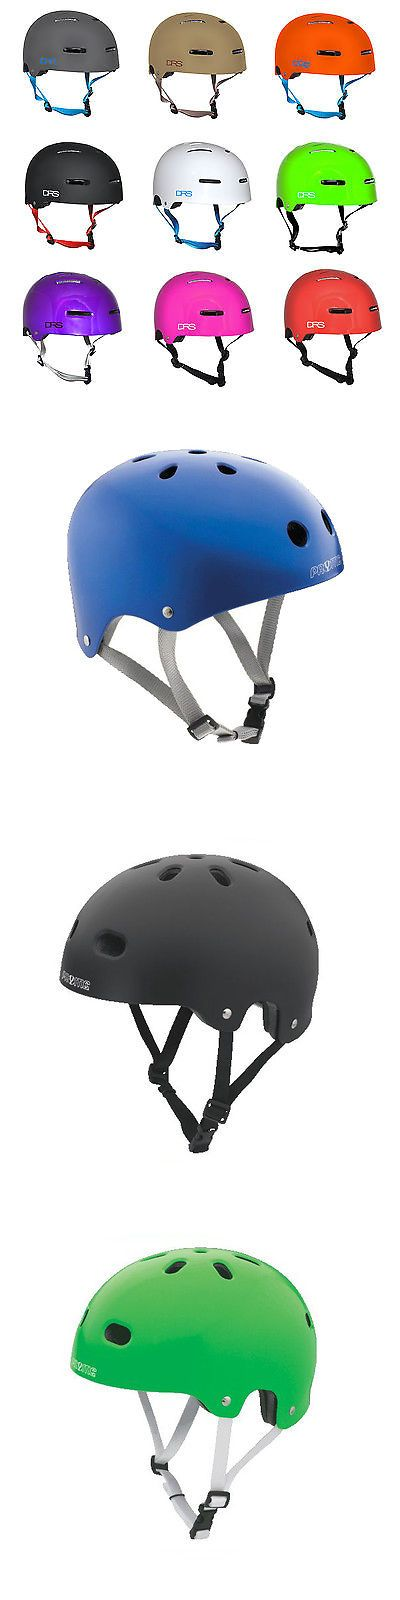 Protective Gear 16260: Pryme Drs Bmx Bike Skate Scooter Helmet - 12 Color Choices Xs - Xl -> BUY IT NOW ONLY: $45 on eBay!